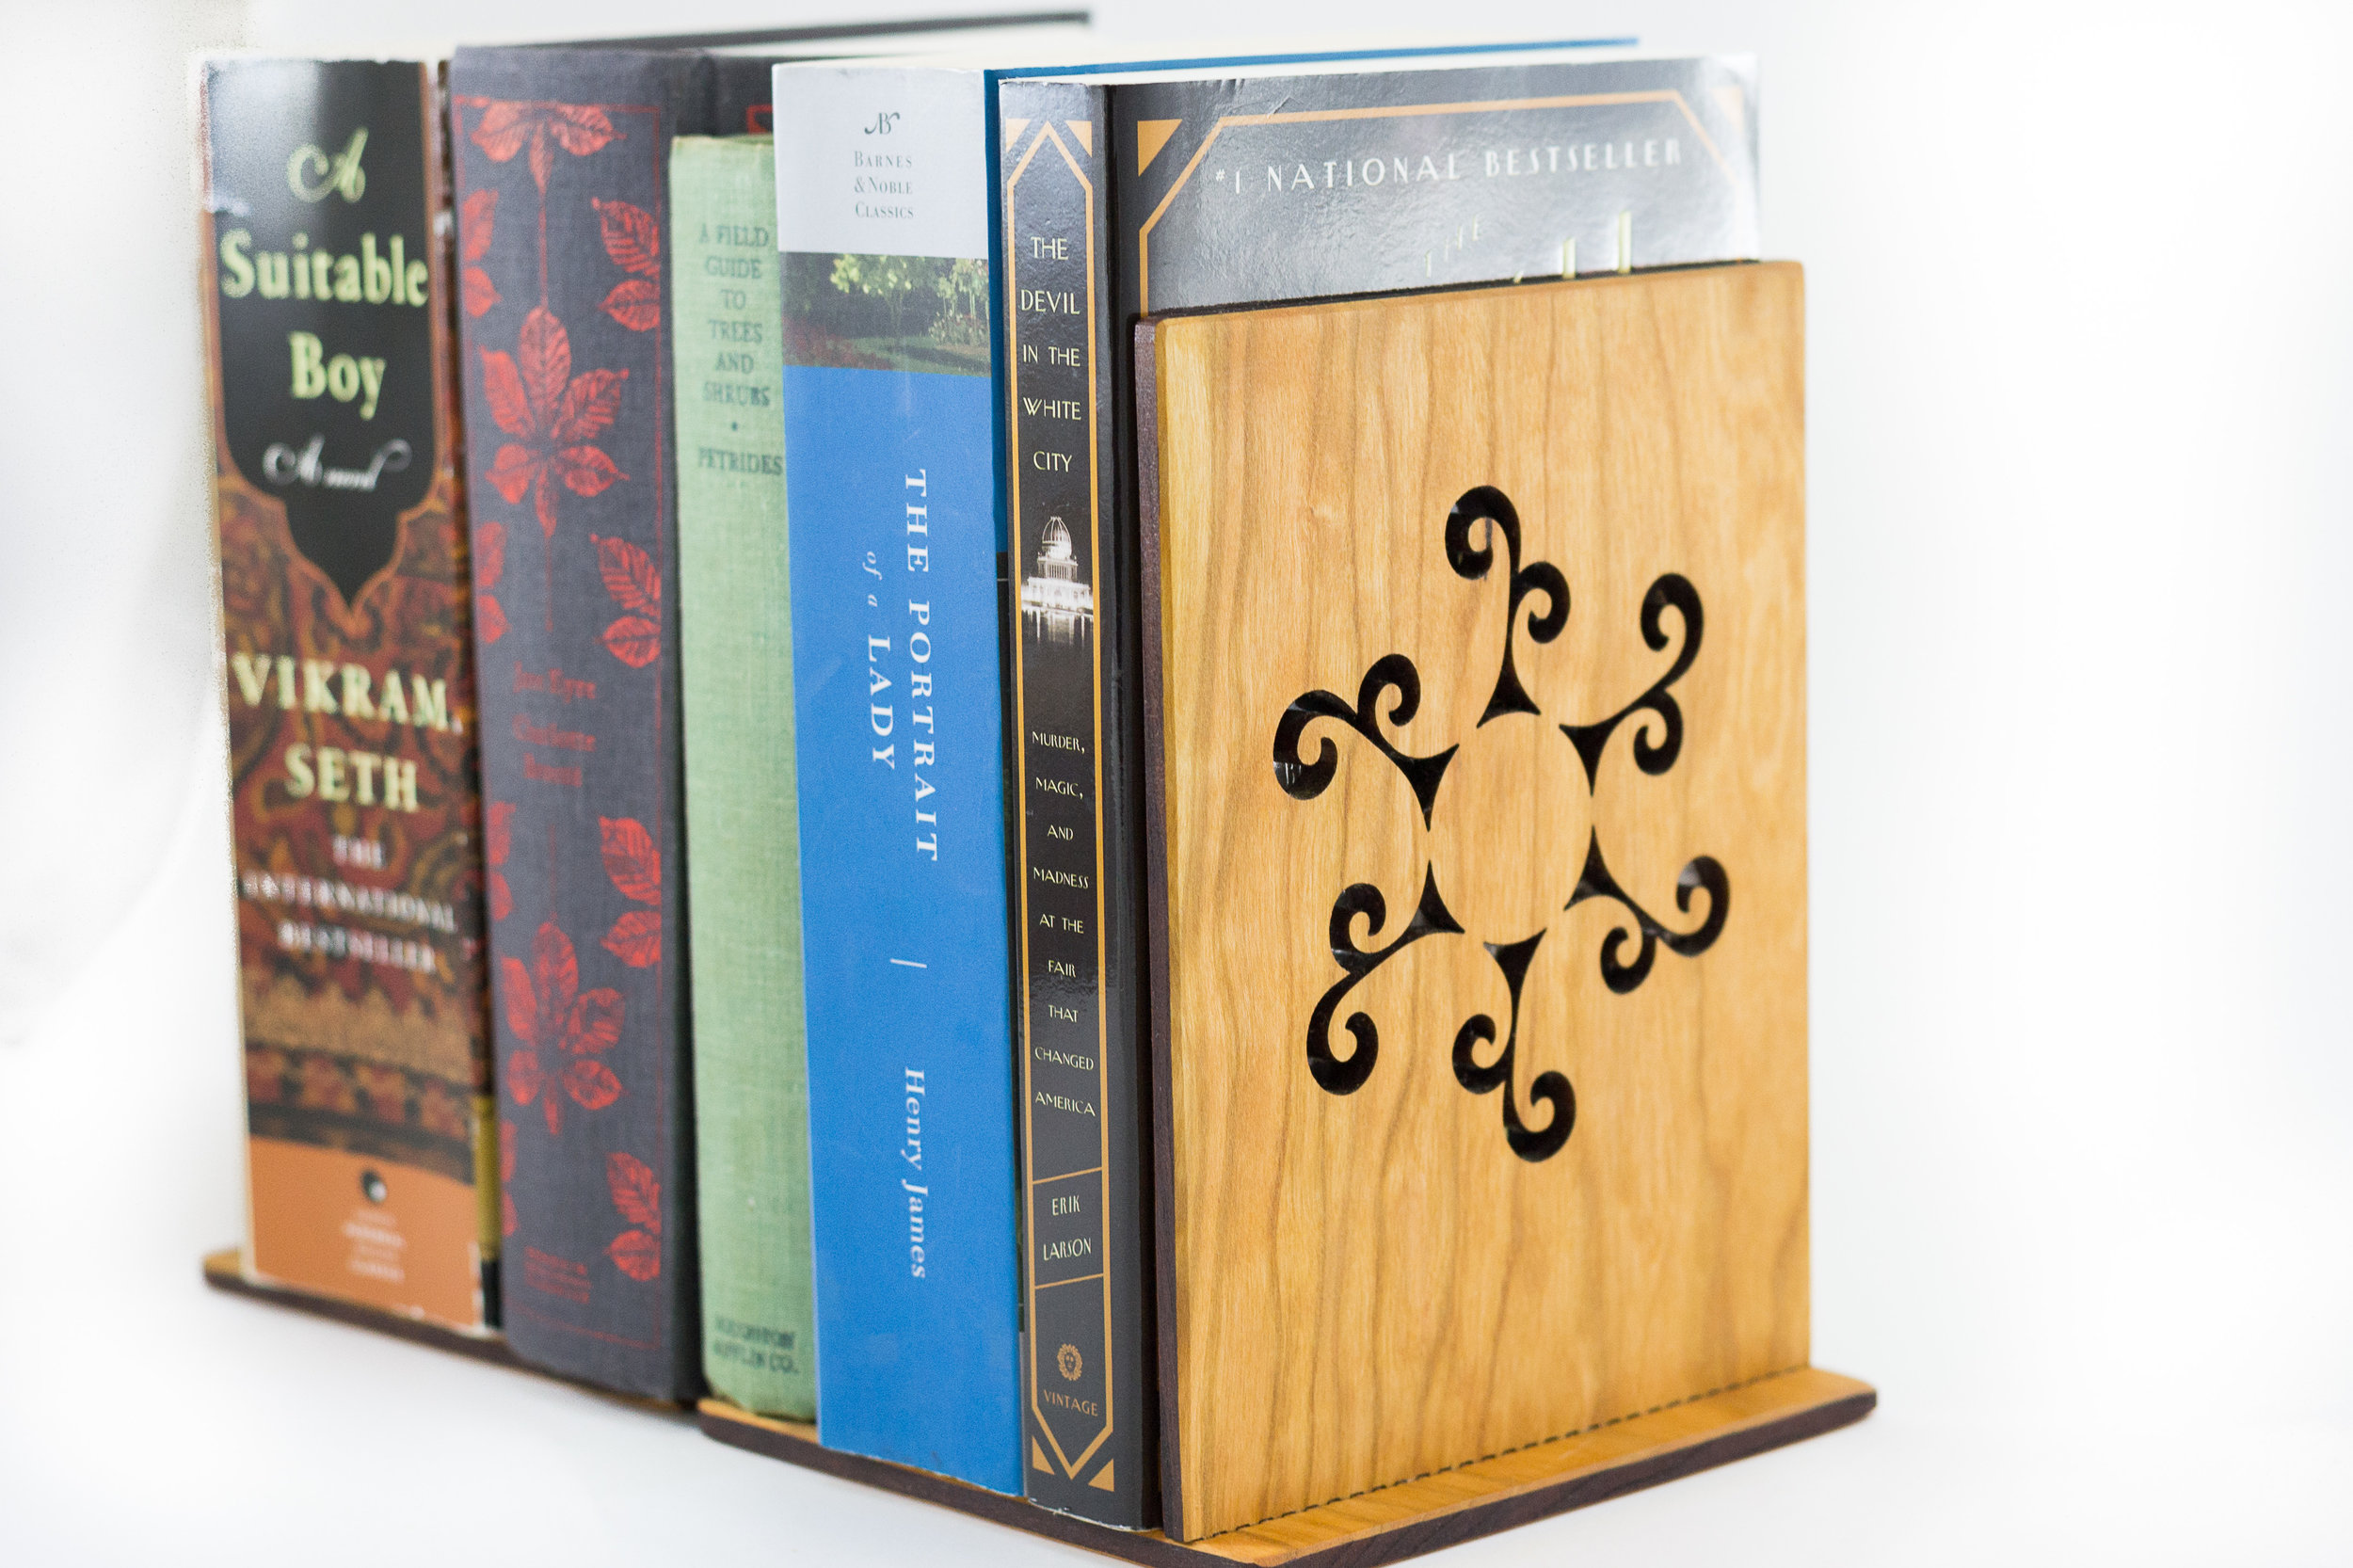 4. Book Ends - If your student is more likely to get caught up in a book than they are to get caught up in a digital screen, the book ends would be a better fit. The book ends are designed to be light on their own, and take advantage of the weight of the books they hold.